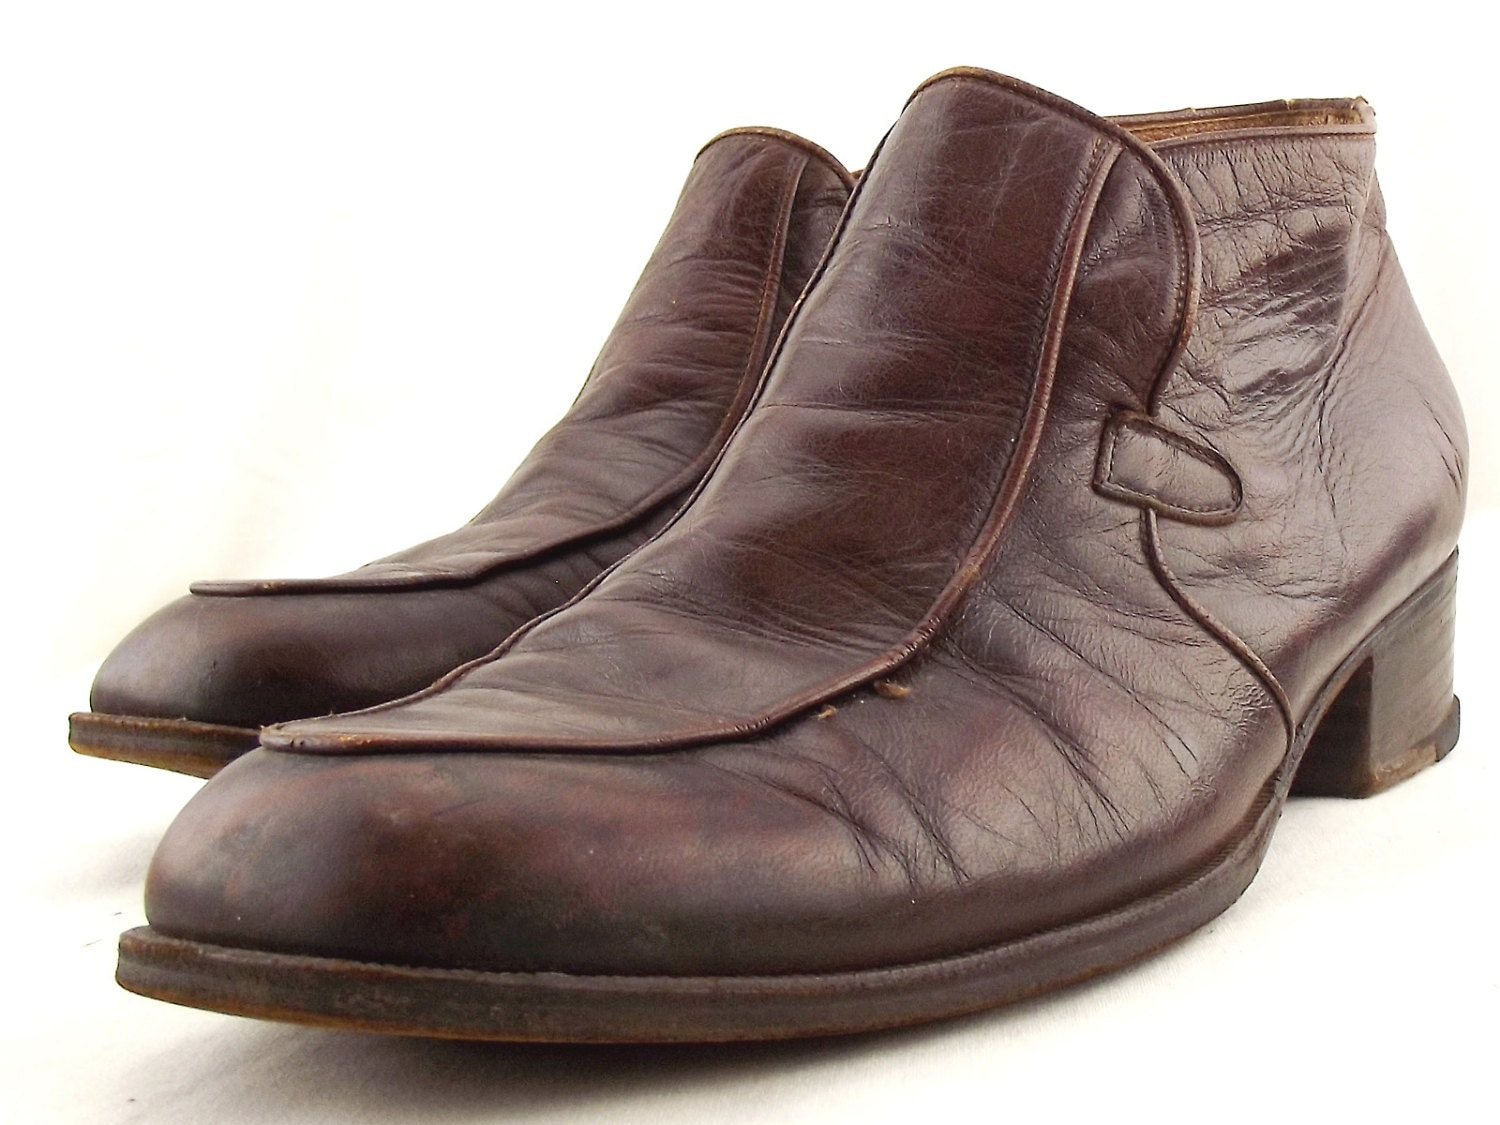 mens shoes vintage shoes boots by vintagesquirrels